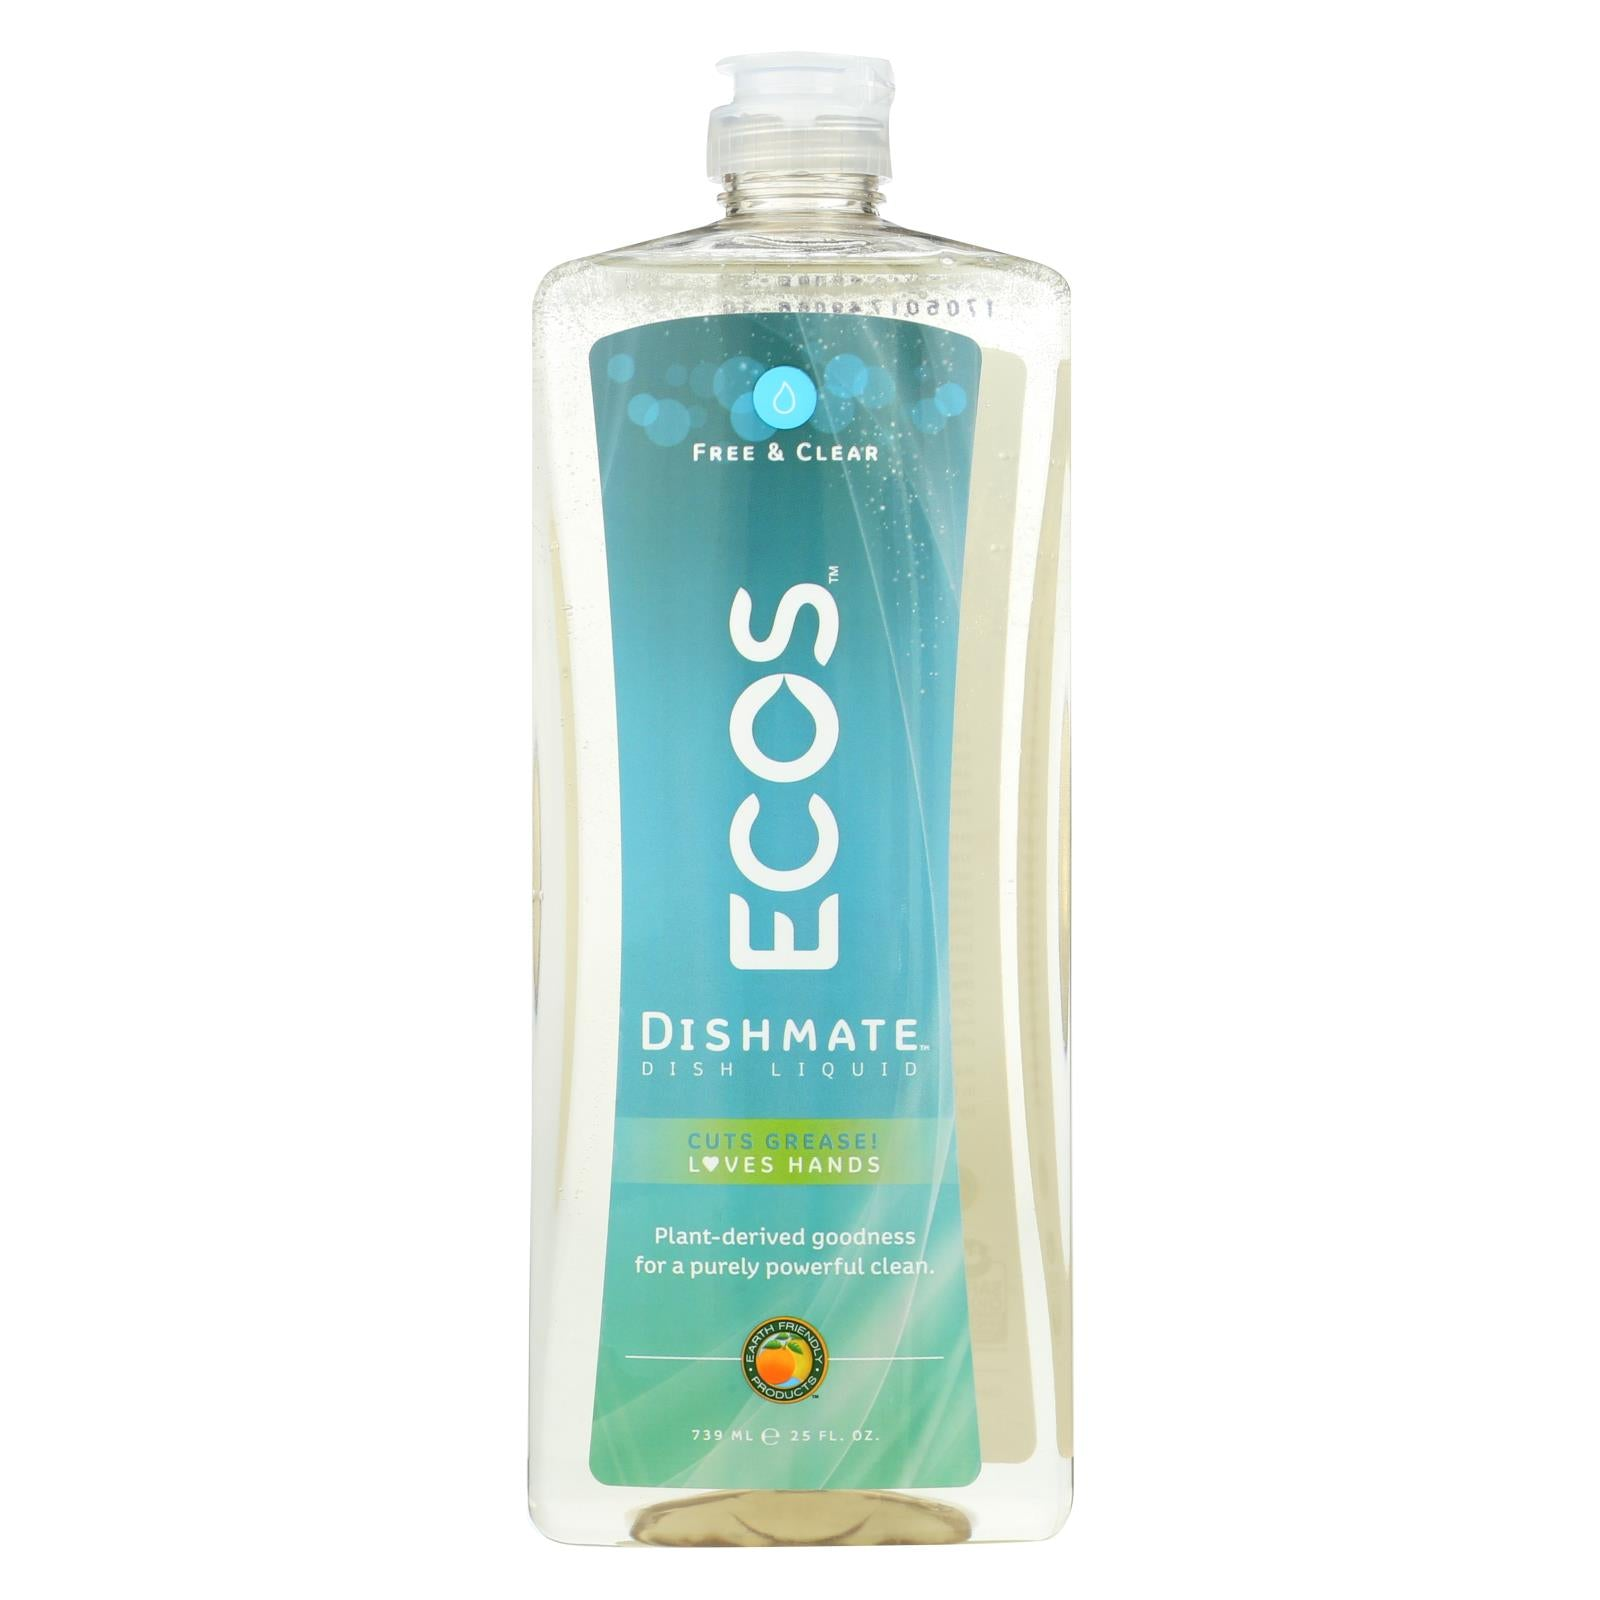 Buy Earth Friendly Dishmate - Free and Clear - 25 fl oz - Dishwashing from Veroeco.com